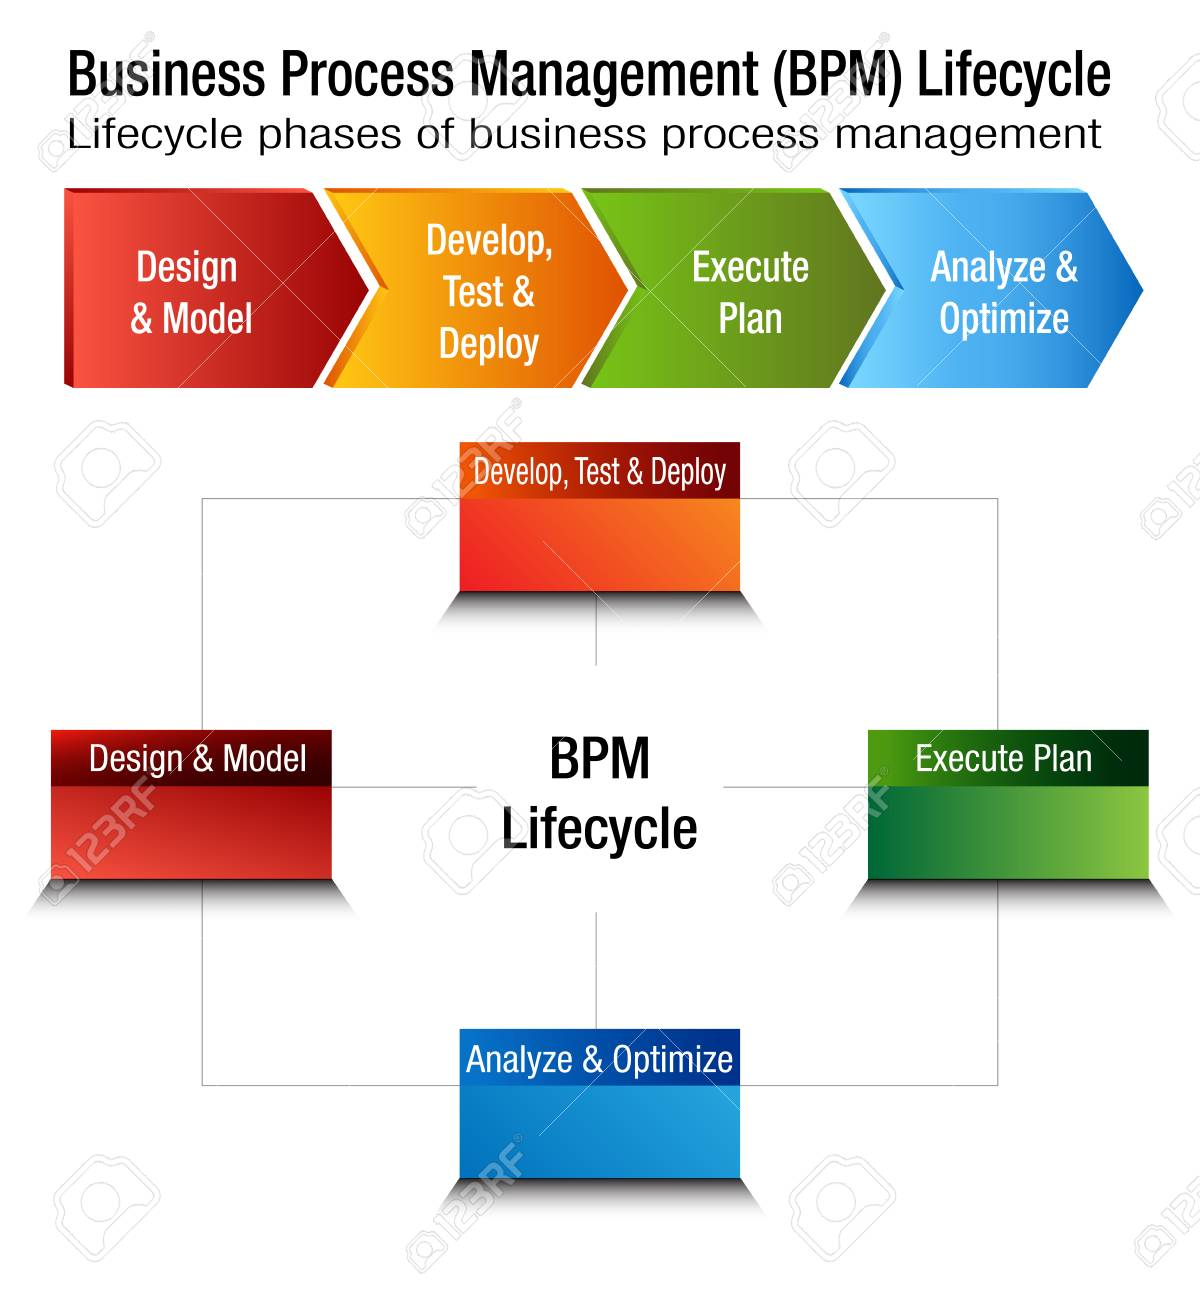 Business Process Management Life Cycle Diagram List Of Schematic Wiring Diagrams Dayton 14pin 5zc17 Relay An Image A Lifecycle Bpm Chart Rh 123rf Com